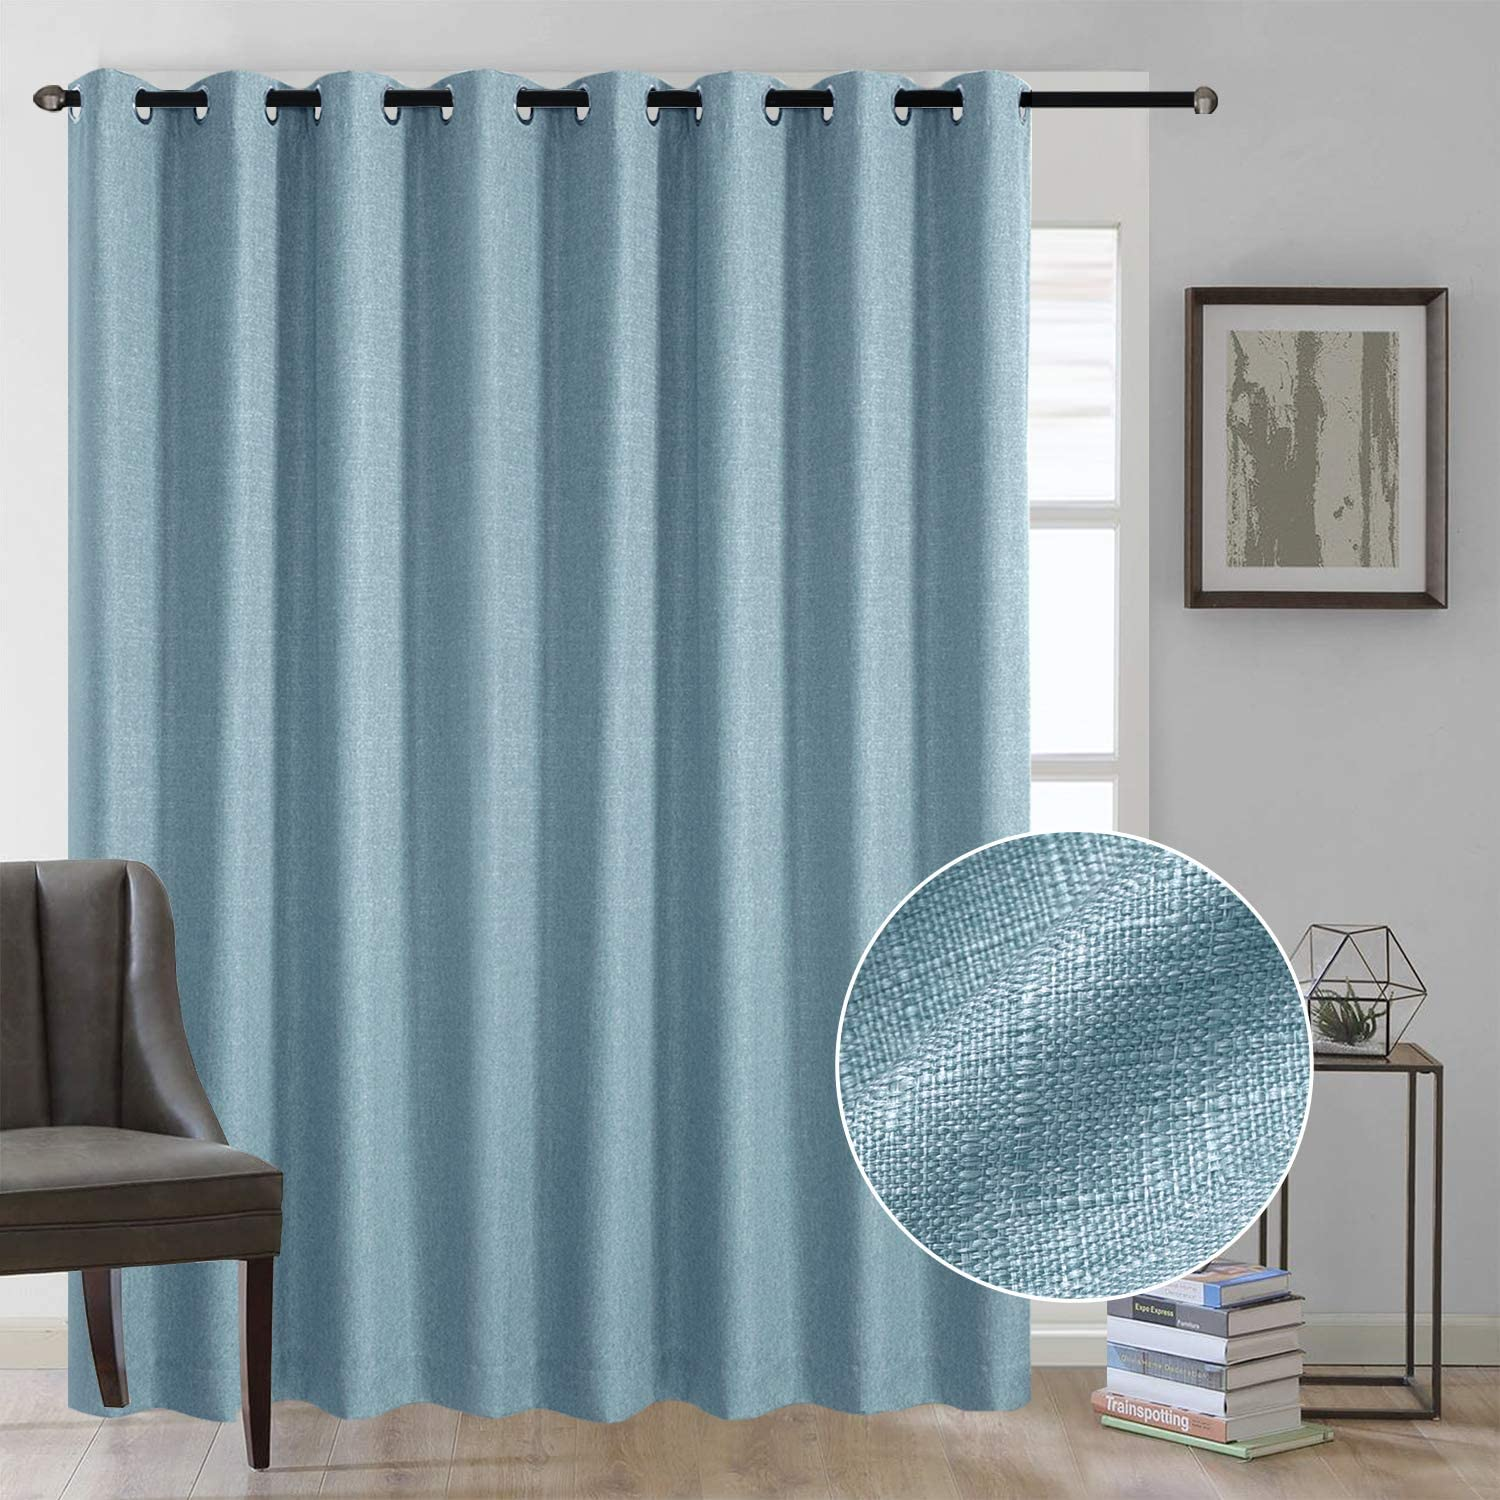 Rose Home Fashion Linen Textured Do Curtains Be super welcome Patio Max 68% OFF Door Sliding